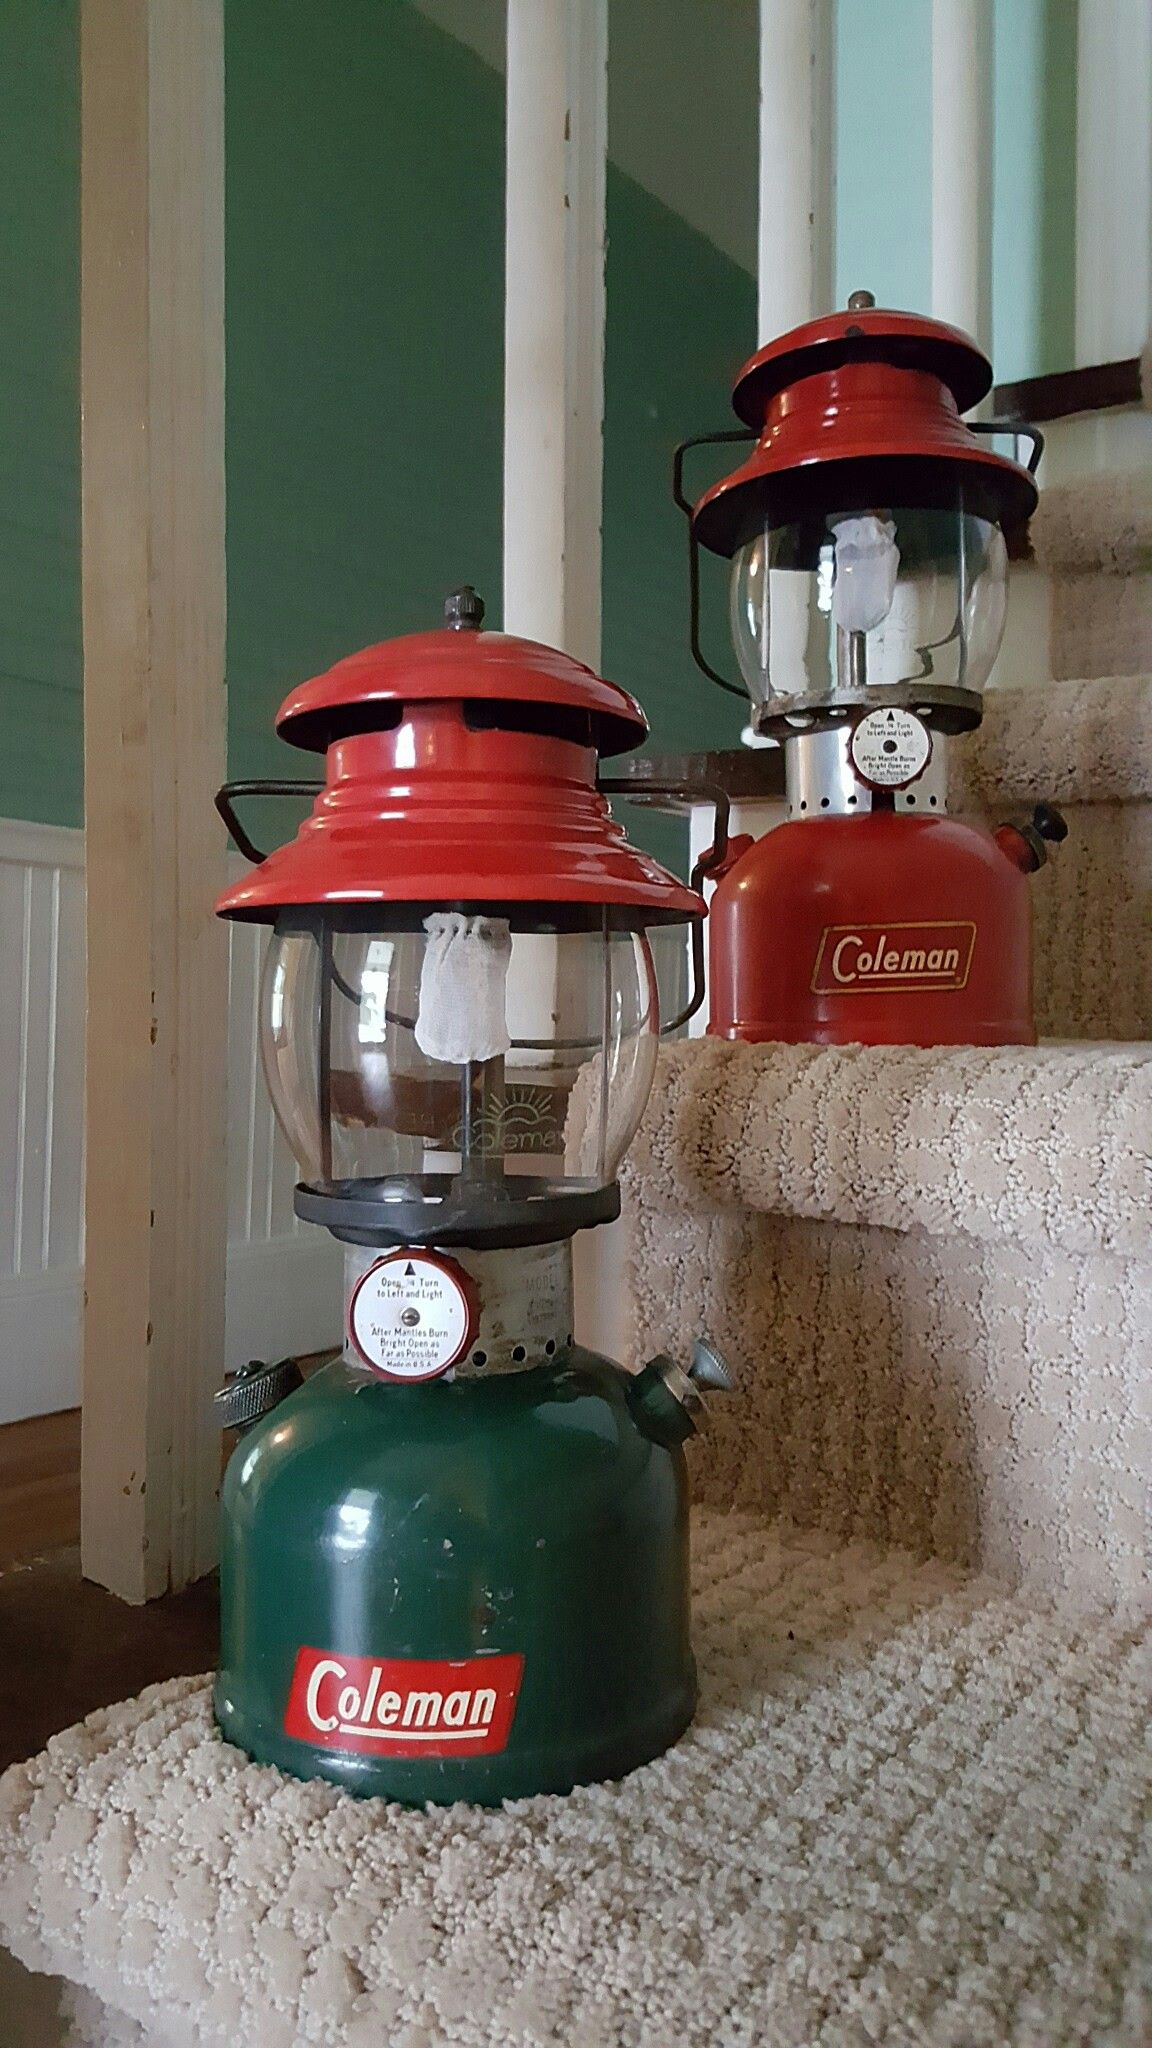 replacement parts for coleman lanterns are at cottage craft works